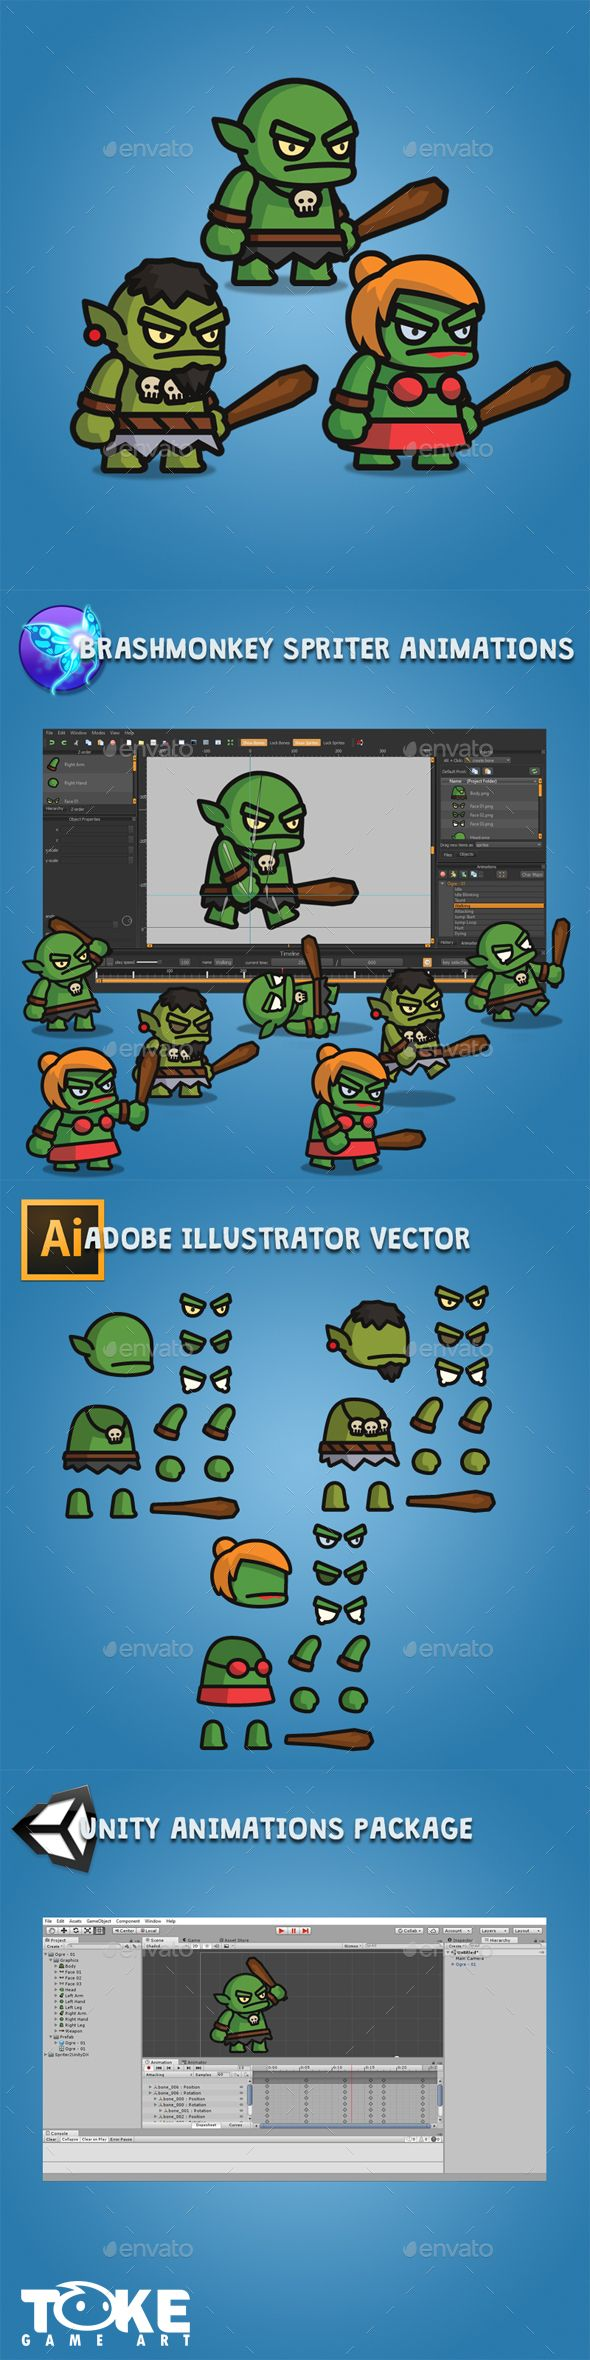 Tiny Style Ogre Cool animations, Pixel art games, Ogre